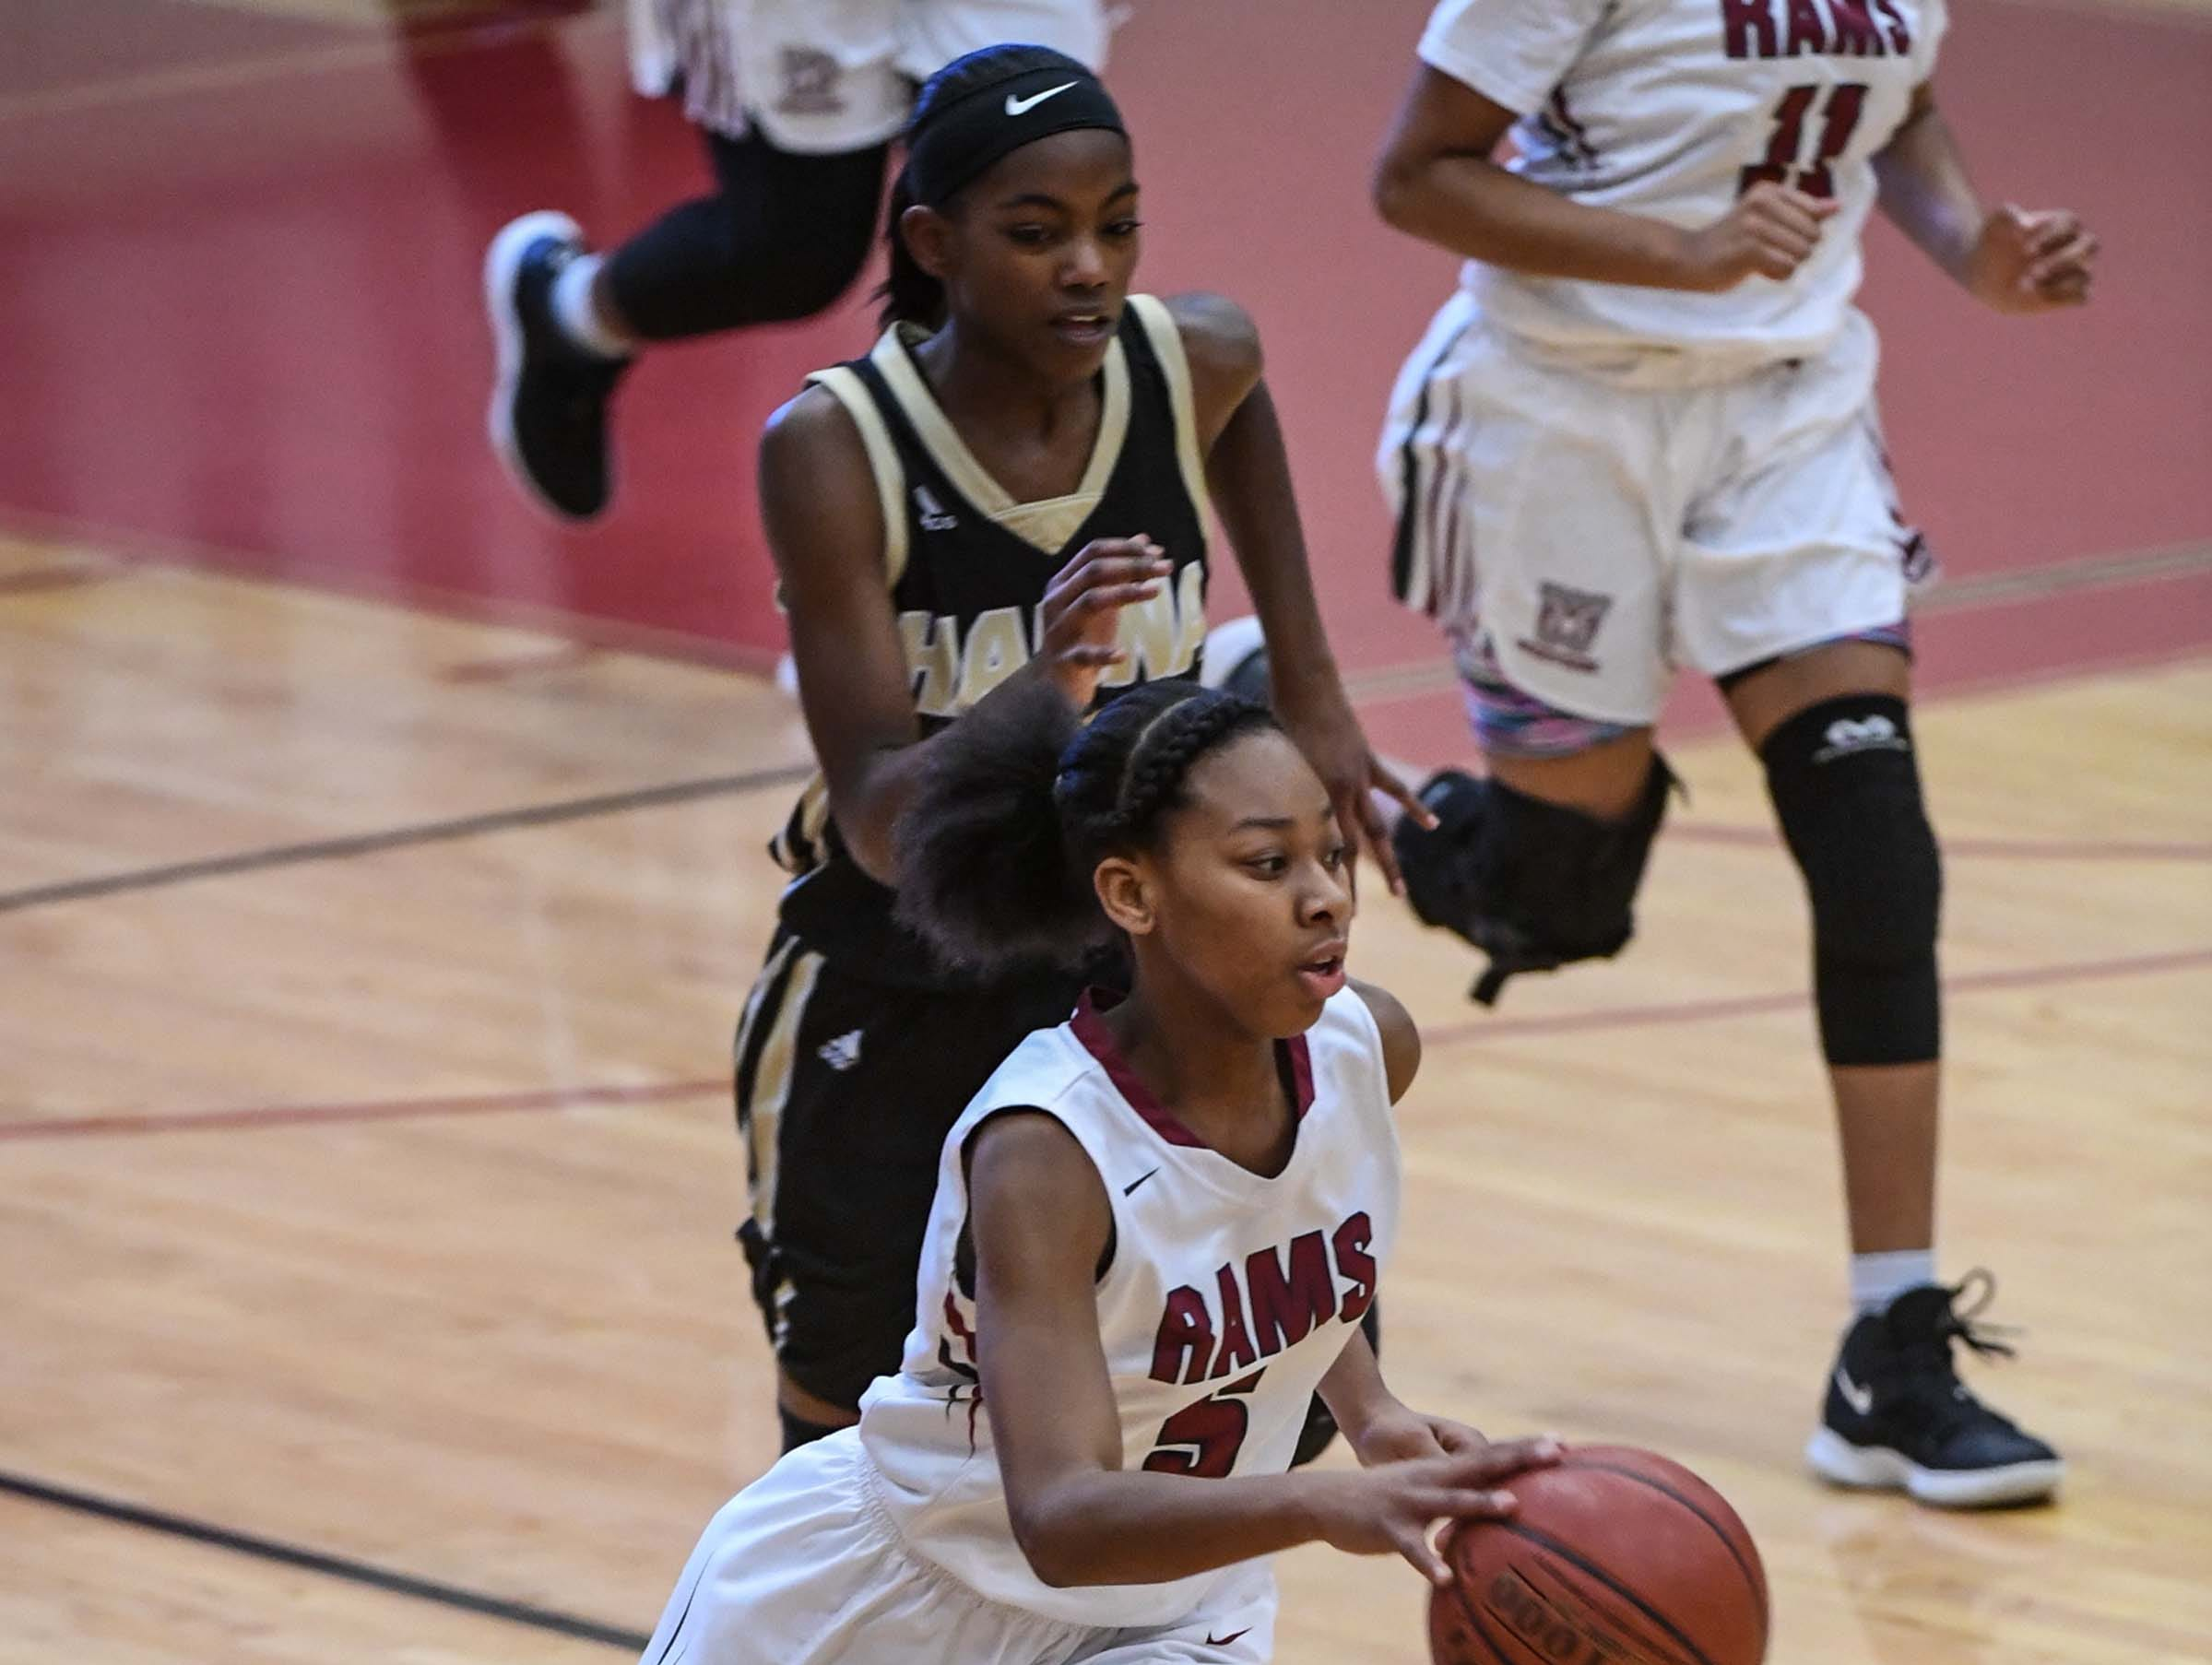 Westside senior Chelsea Adger(5) during the first quarter at Westside High School in Anderson on Friday.